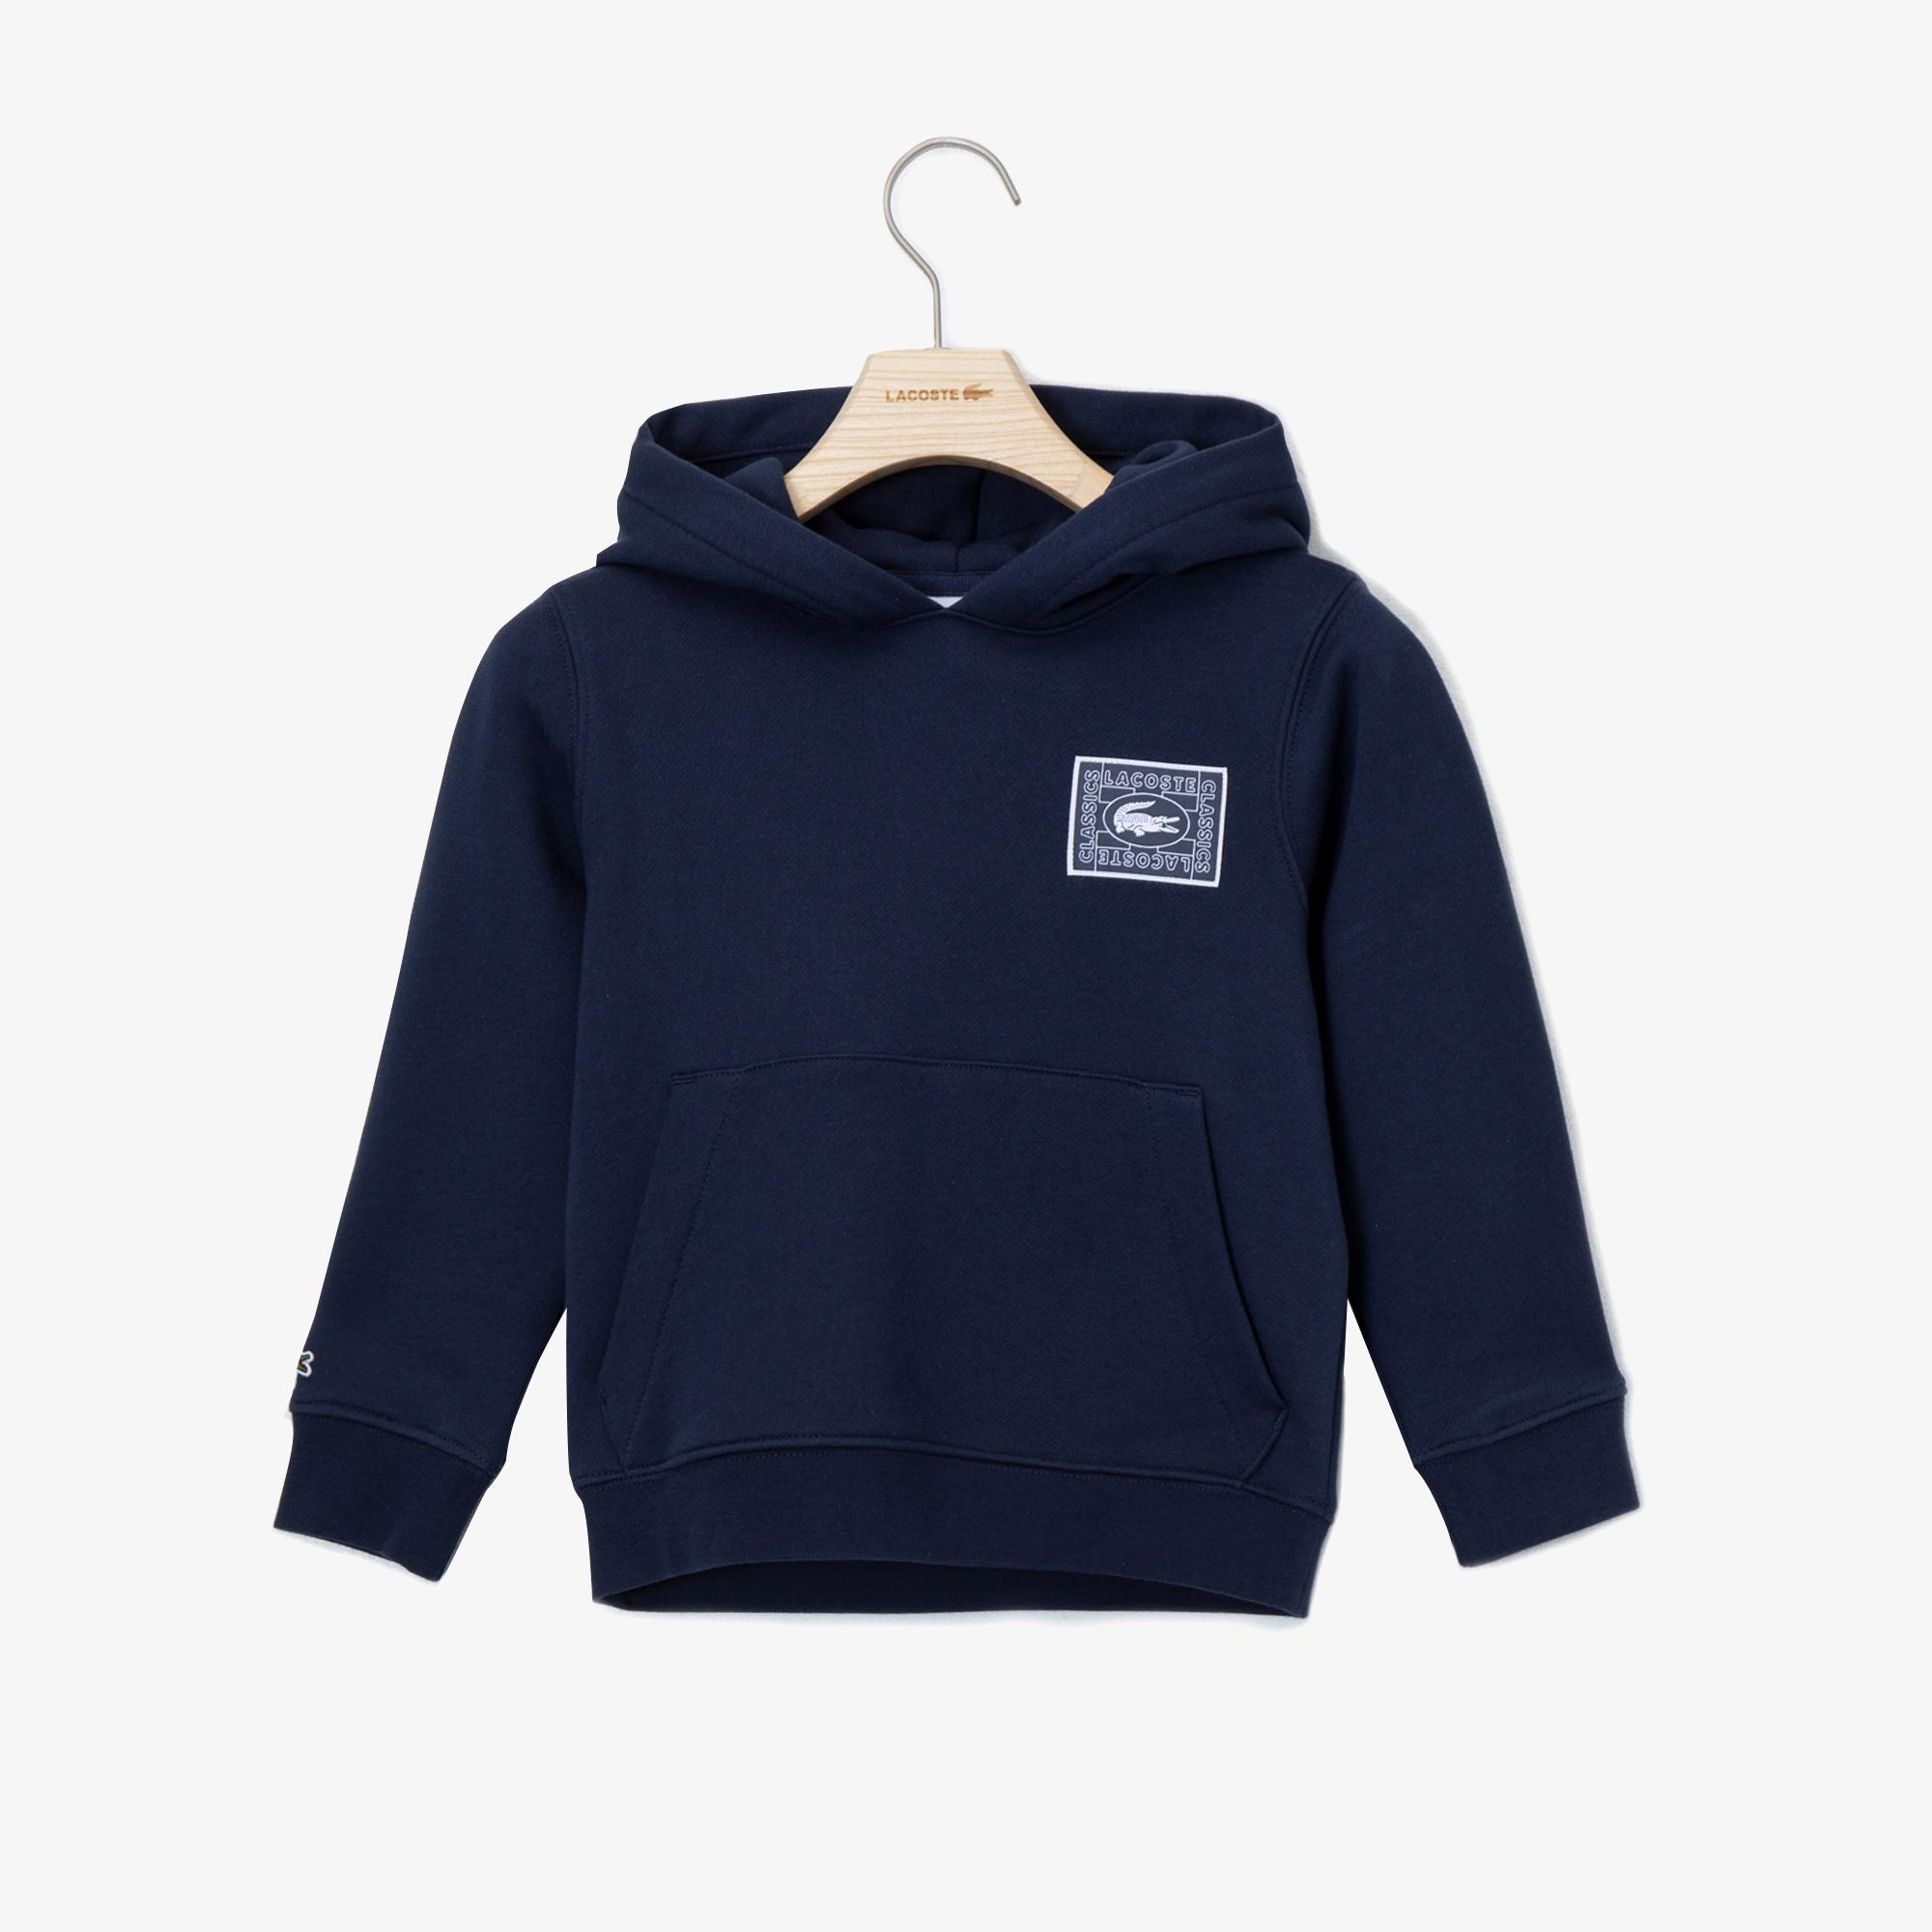 Lacoste Kids' Graphic Hooded Sweater